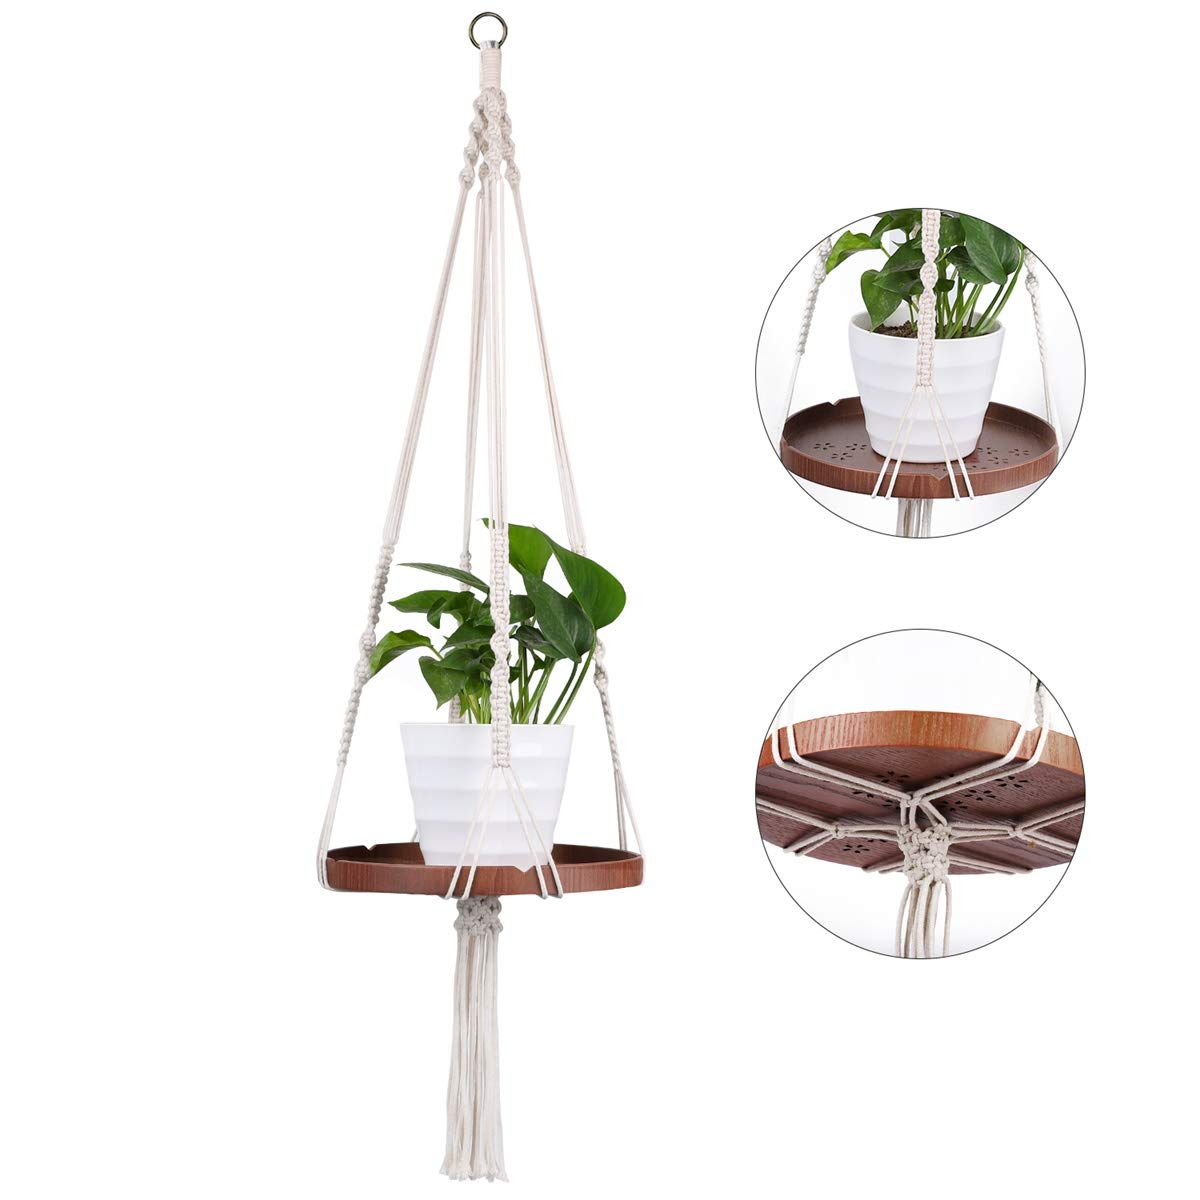 Macrame Plant Shelf Hanger, Indoor Modern Floating Hanging Planter Home Decorative Pot with 47 Cotton Rope Real Wood in Box